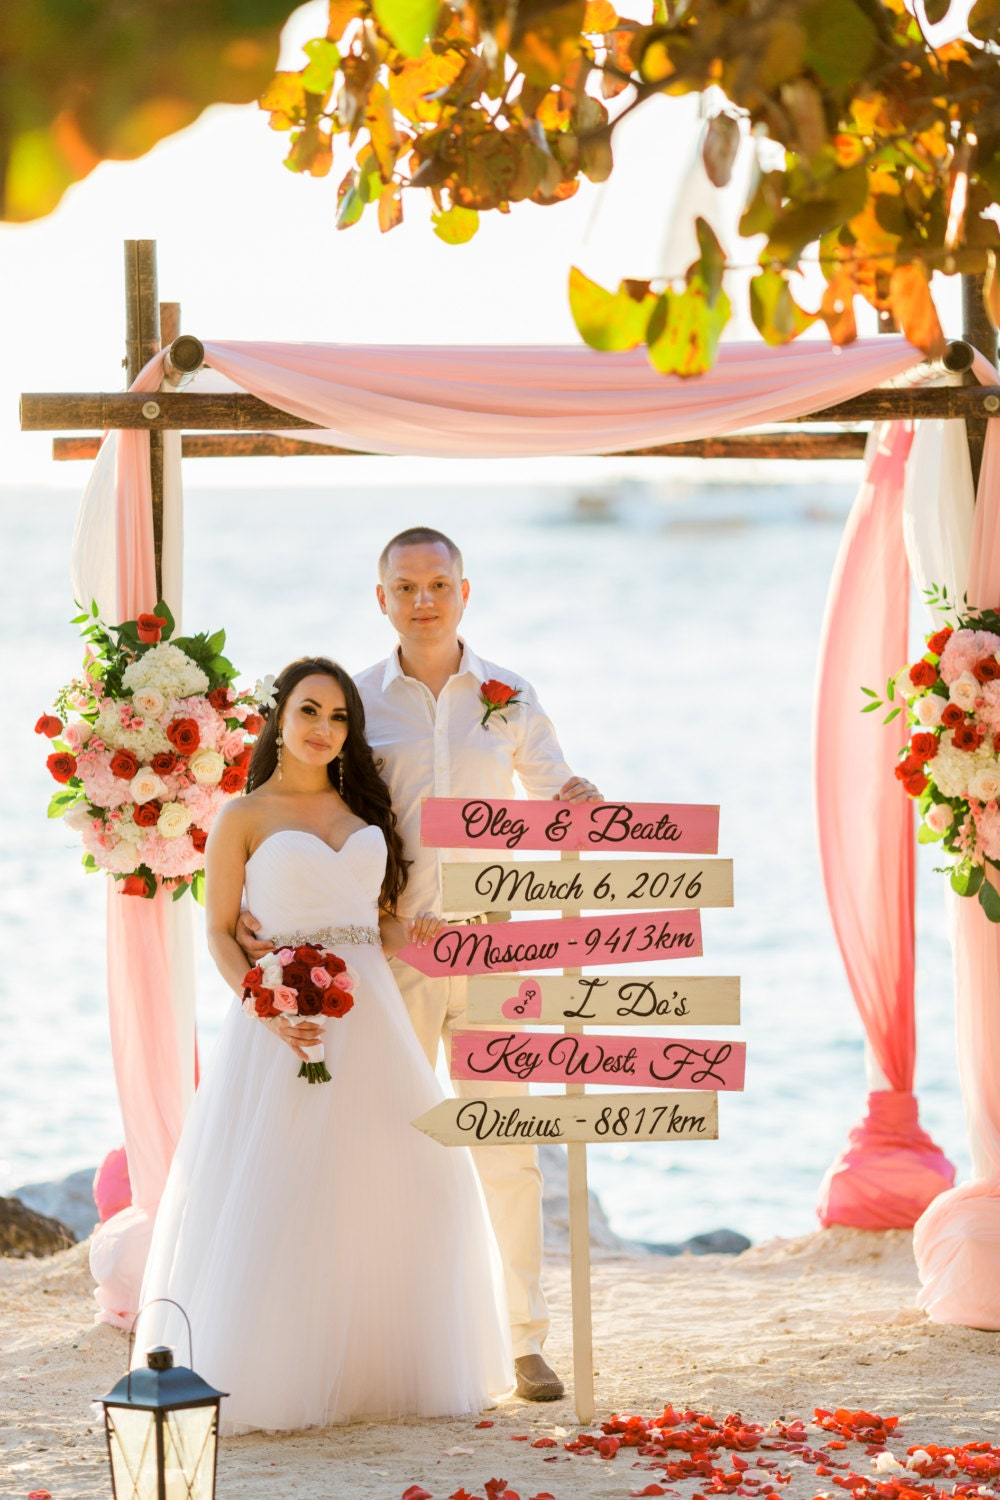 Blush Pink Wedding Beach Directional Sign Rustic Chic Decor I Dos Arrow Wood Gift For Couple